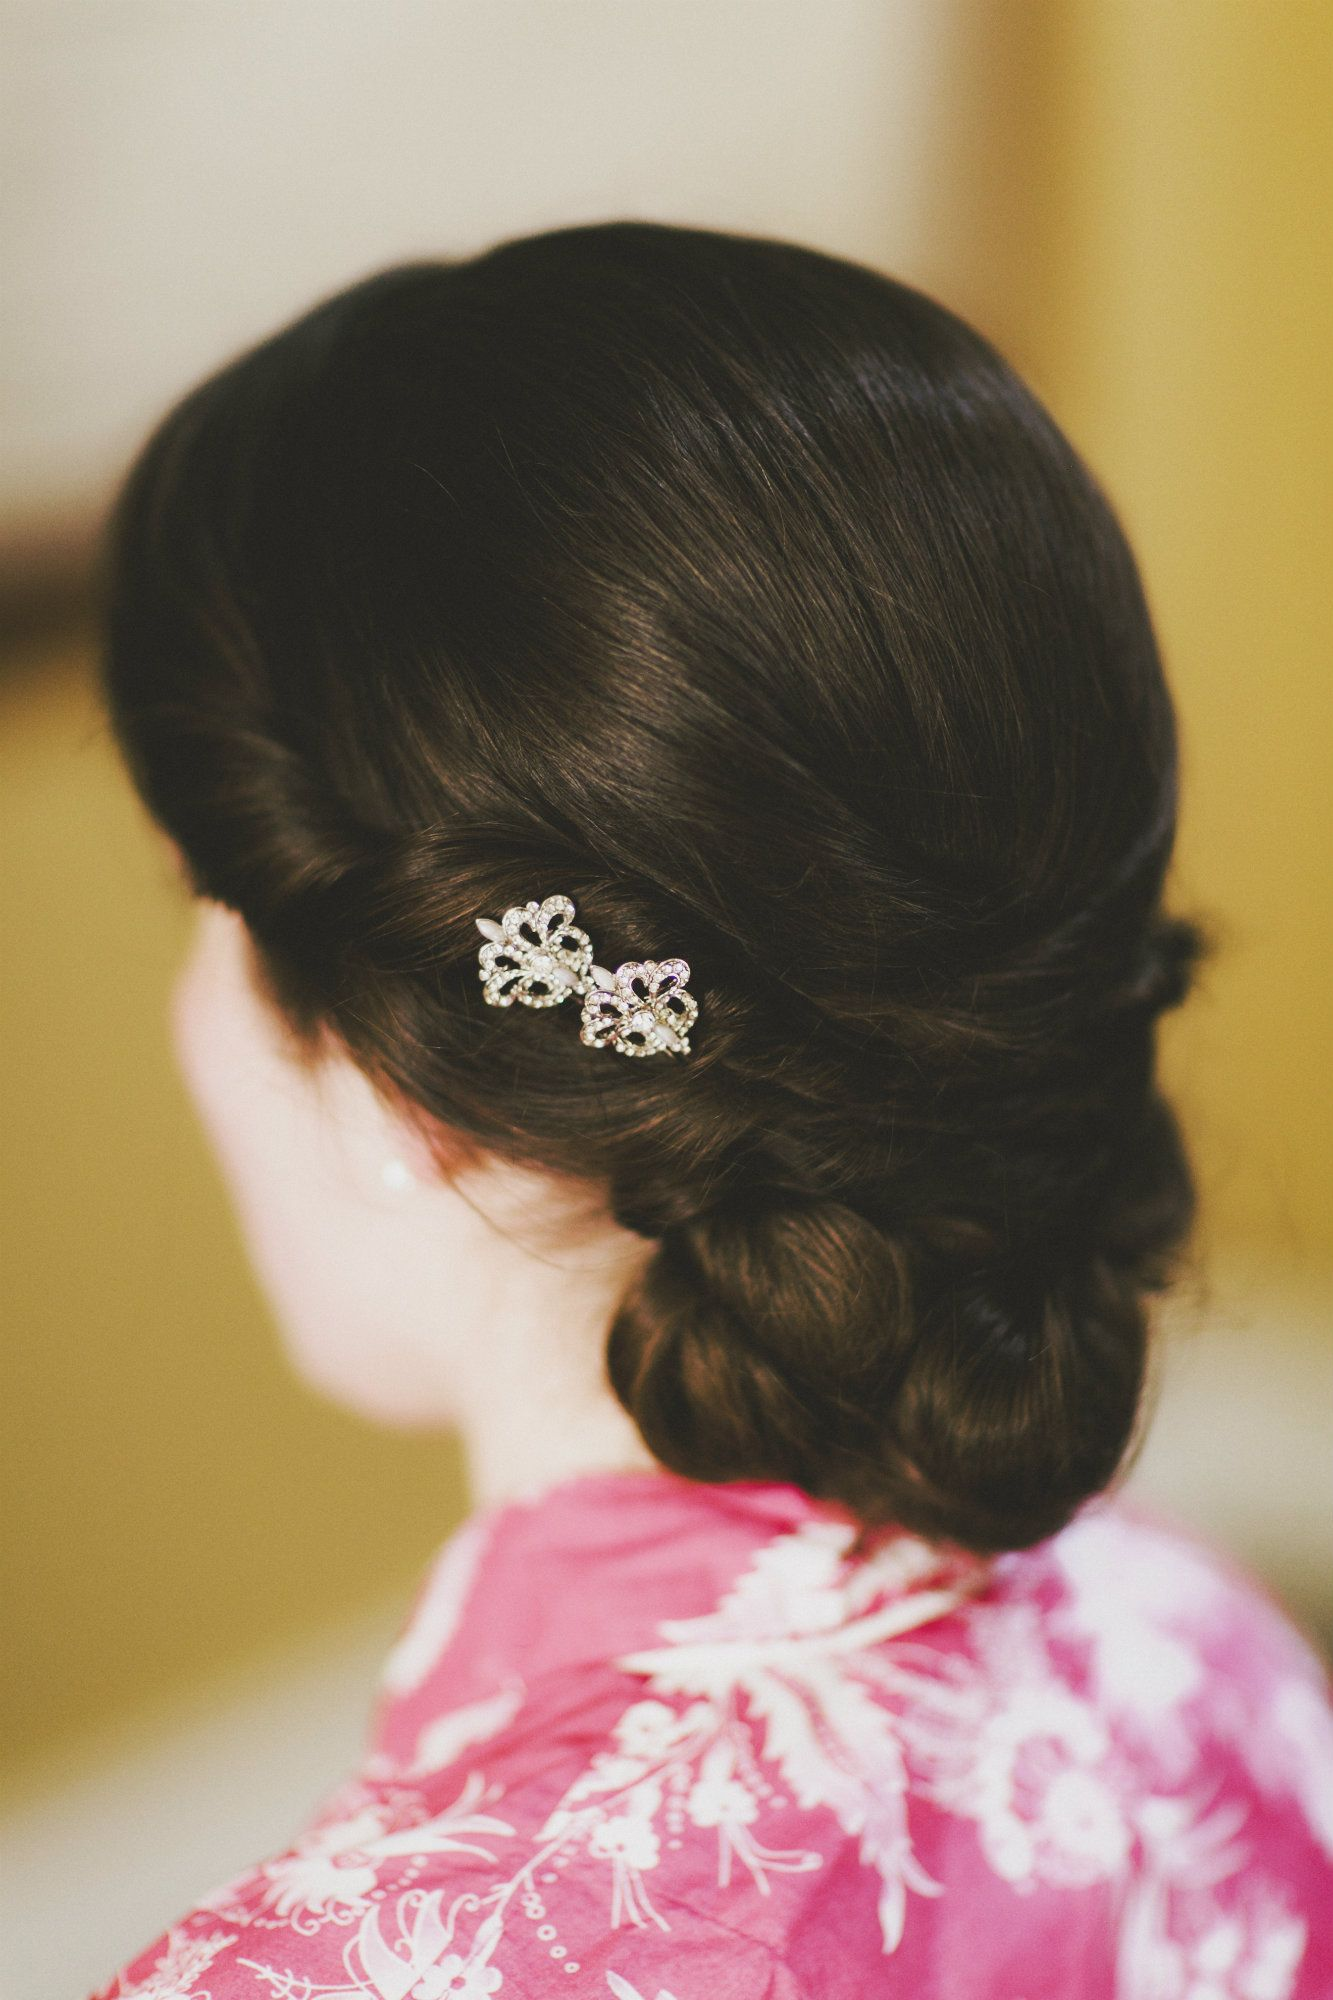 Gloucestershire-Wedding-bridal-hairstylist-UK-ELN(5).2